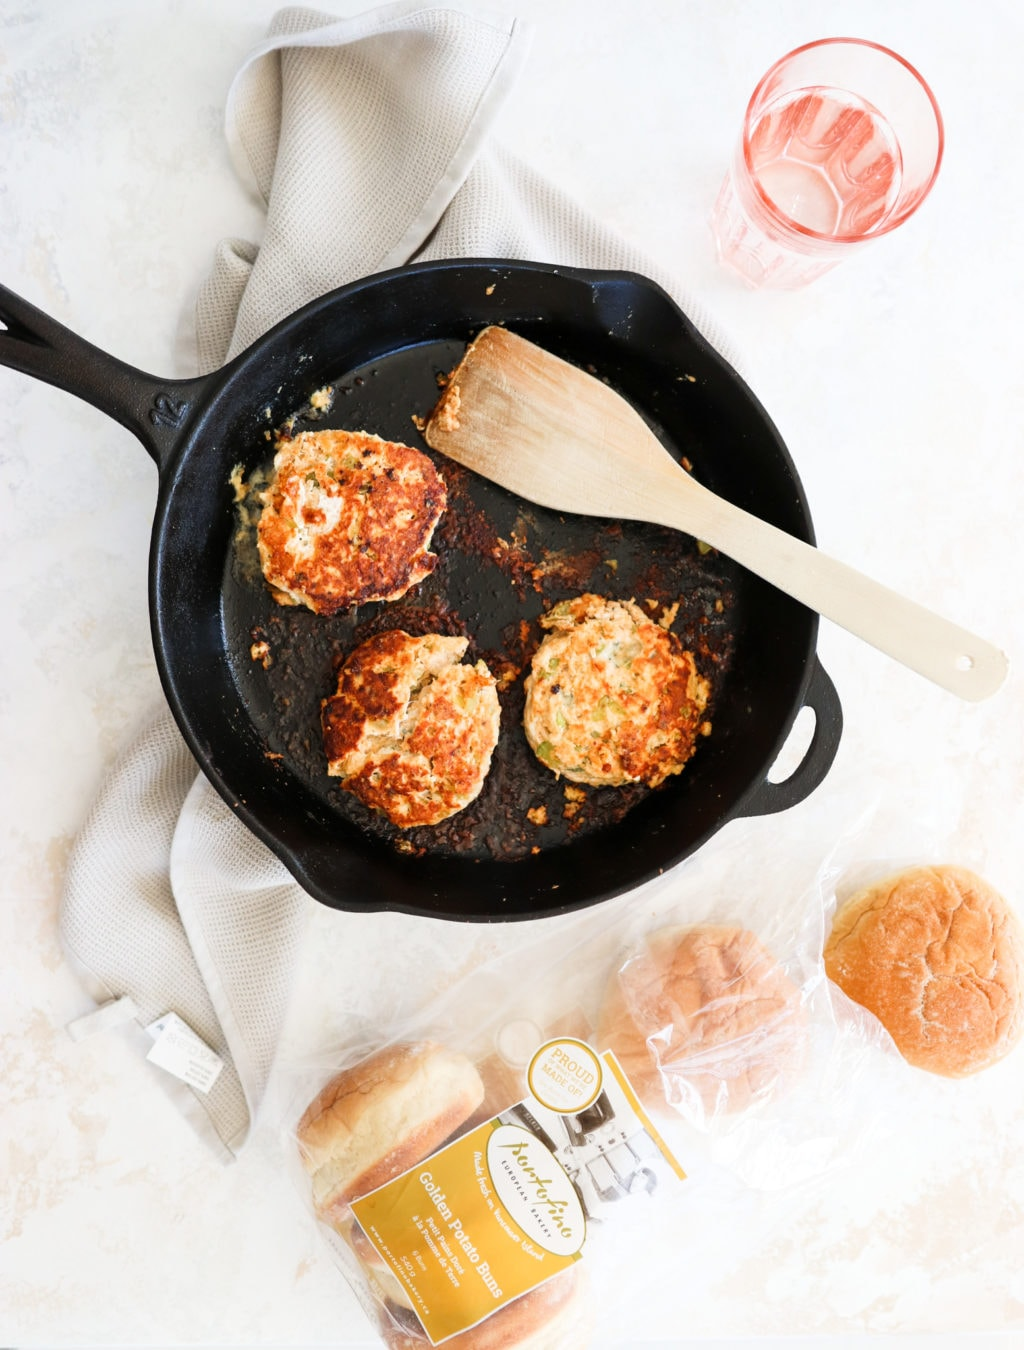 Three chicken patties sitting on a large cast iron skillet with a wooden spatula over a white surface with a bag of burger buns beside it.